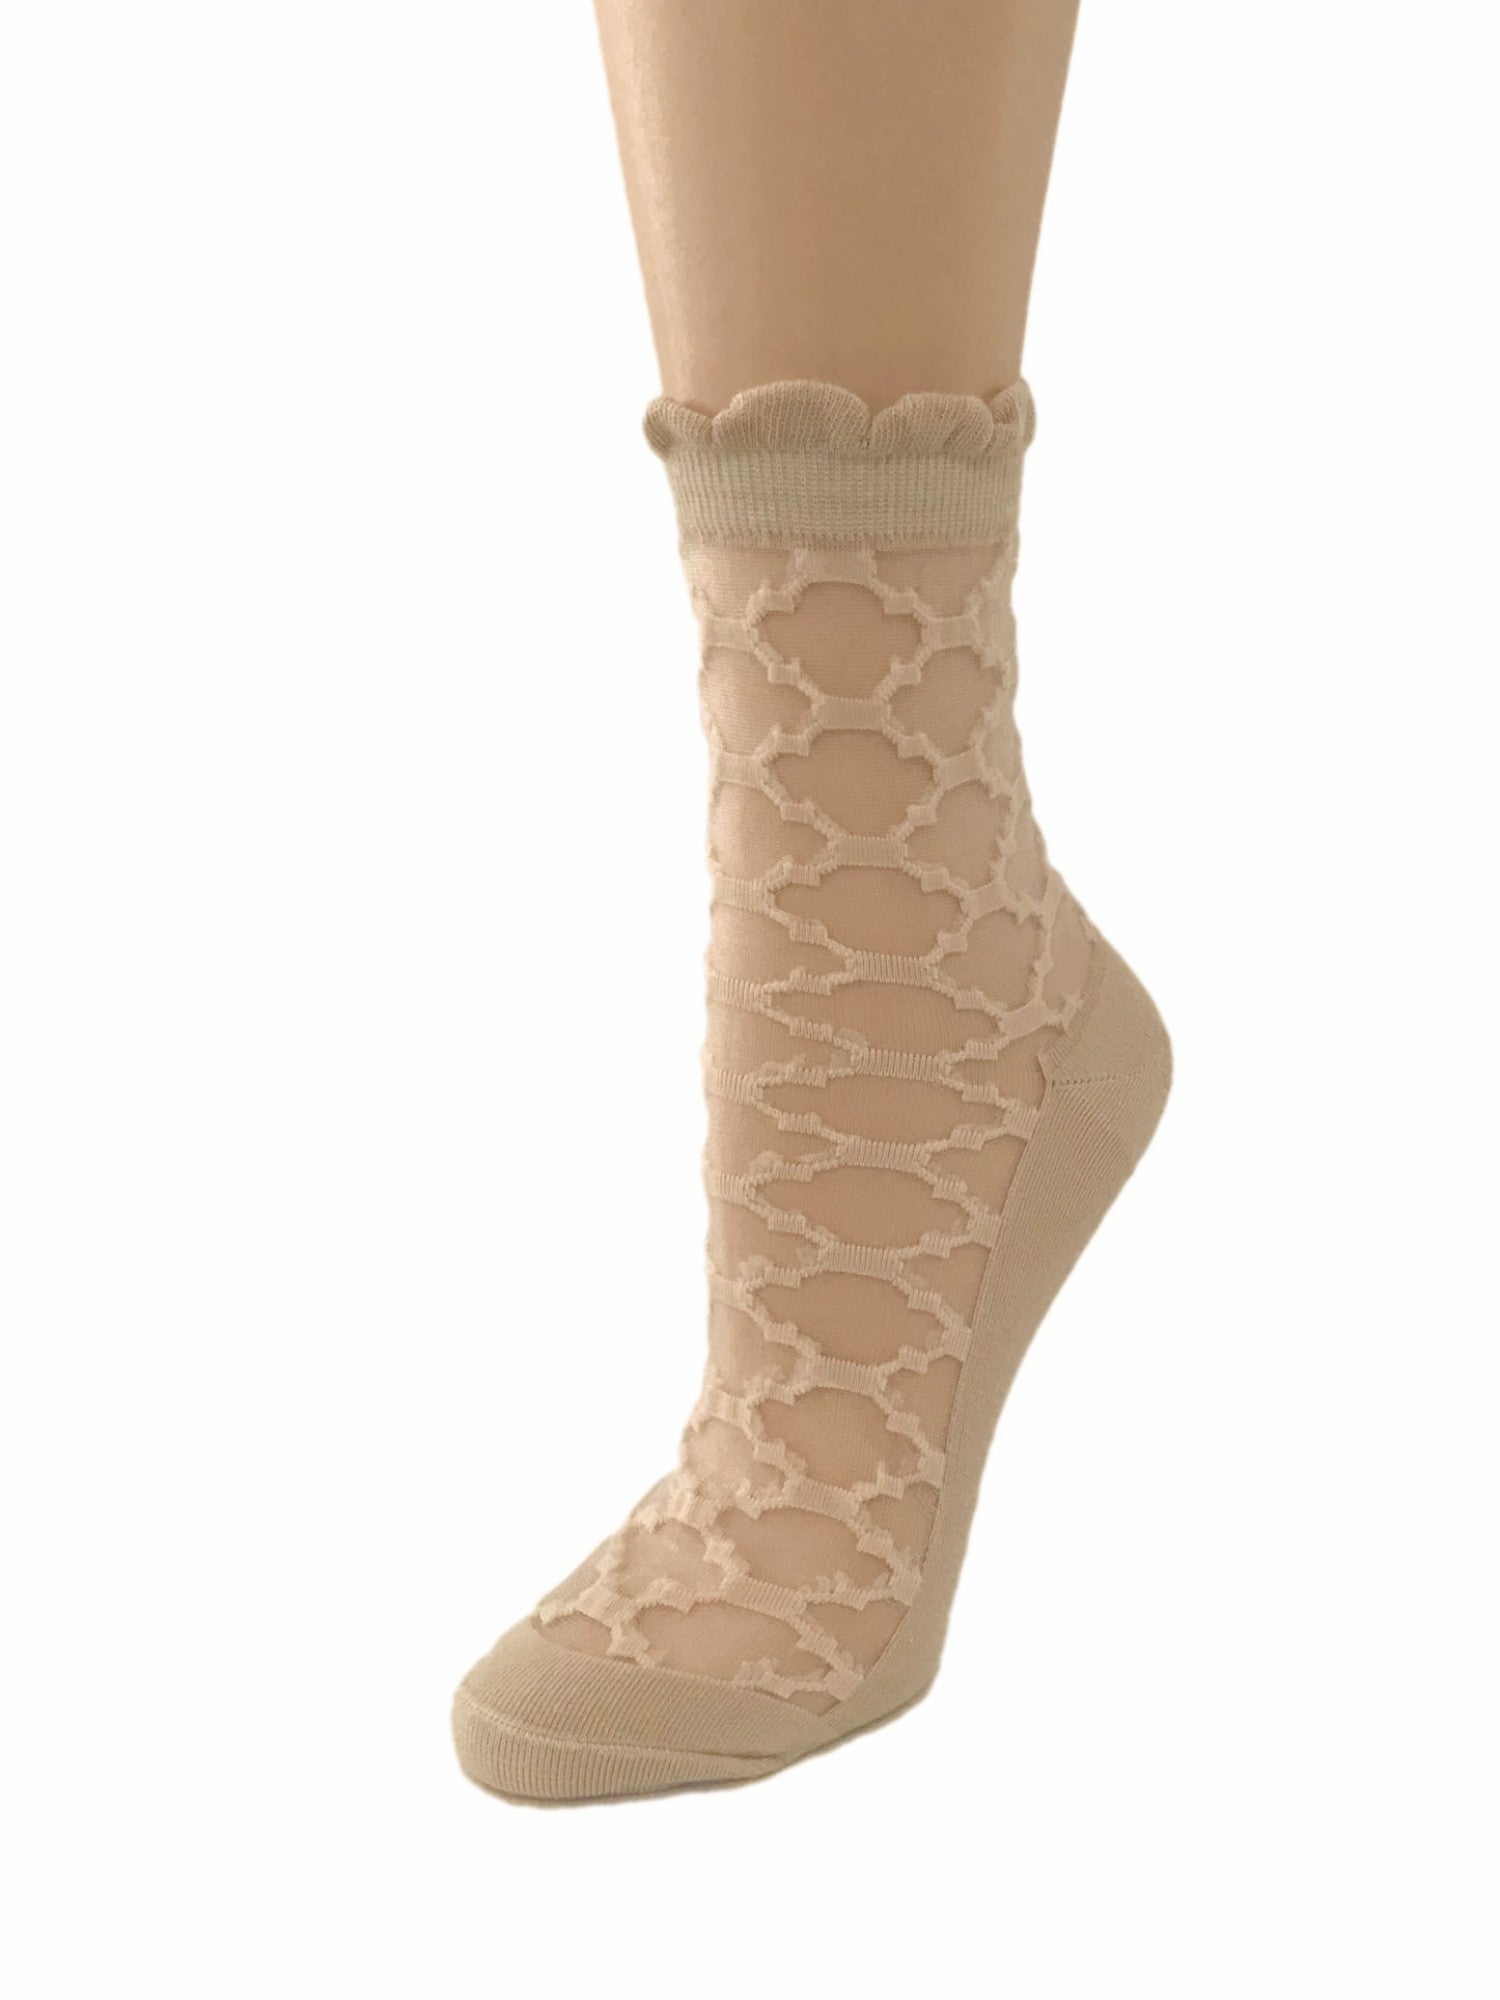 Patterned Skin Sheer Socks - Global Trendz Fashion®